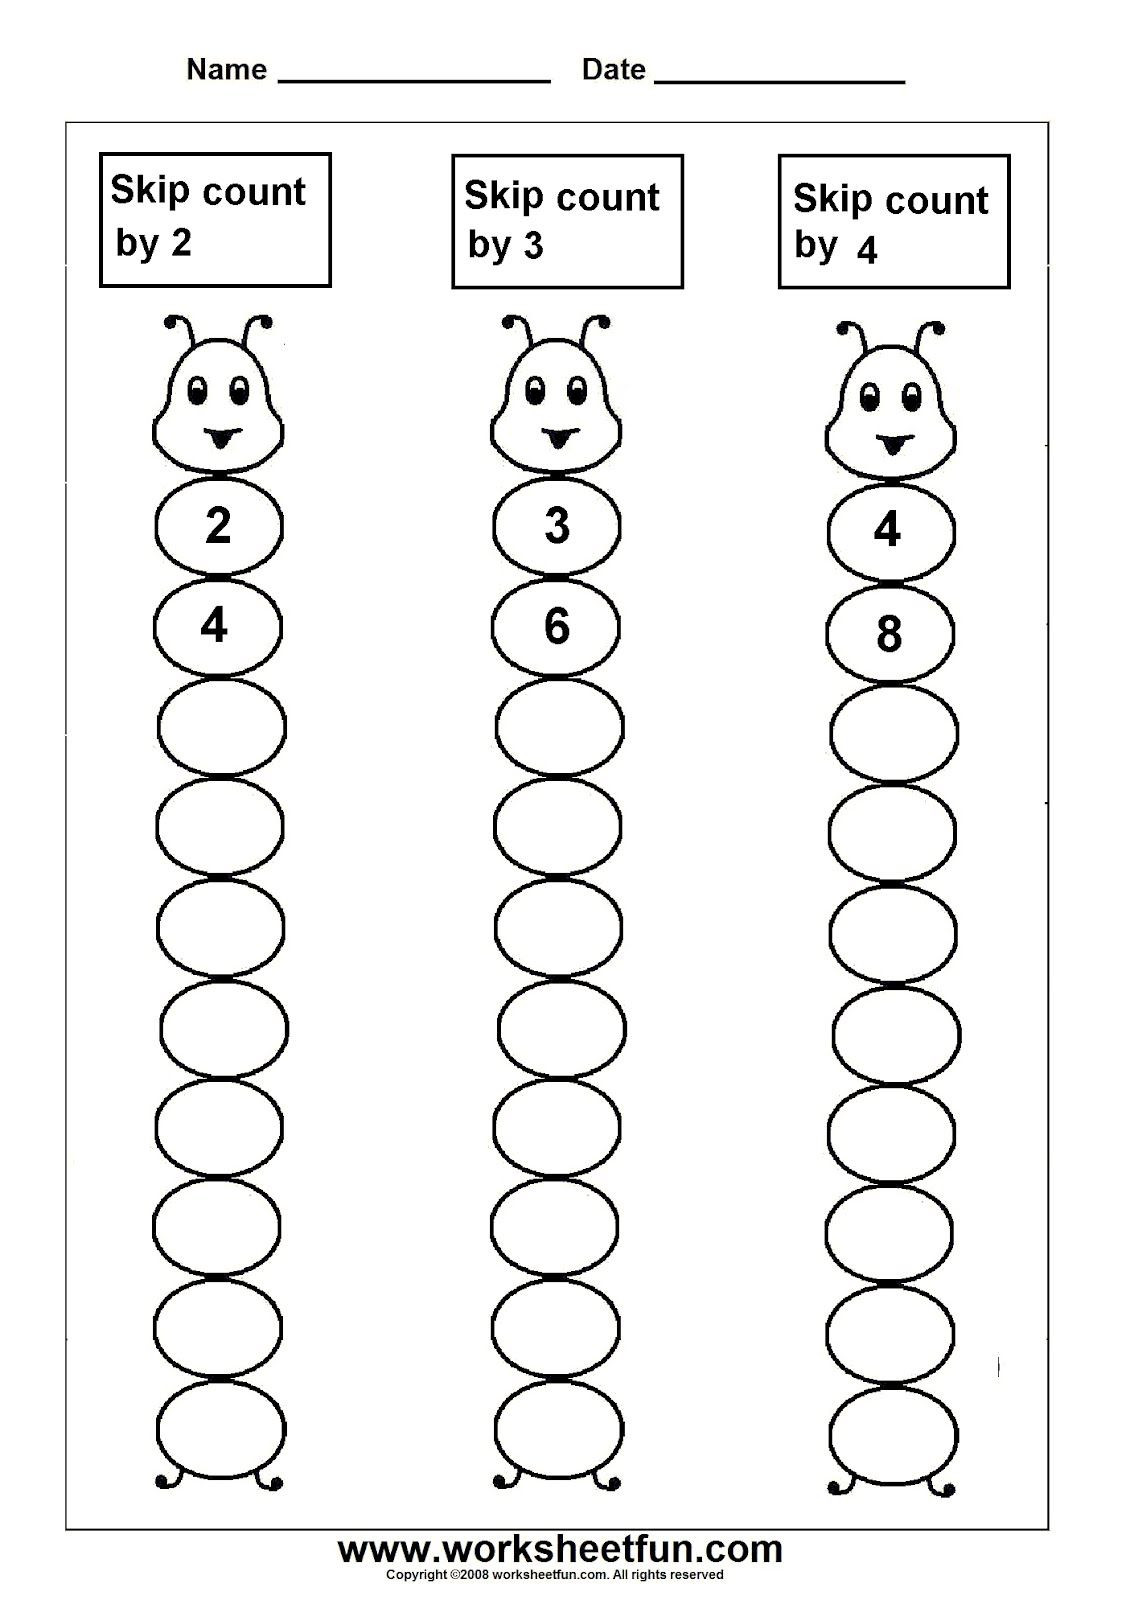 Skip Counting Worksheets First Grade Skip Counting Cc Week 1 and Week 2 with Images